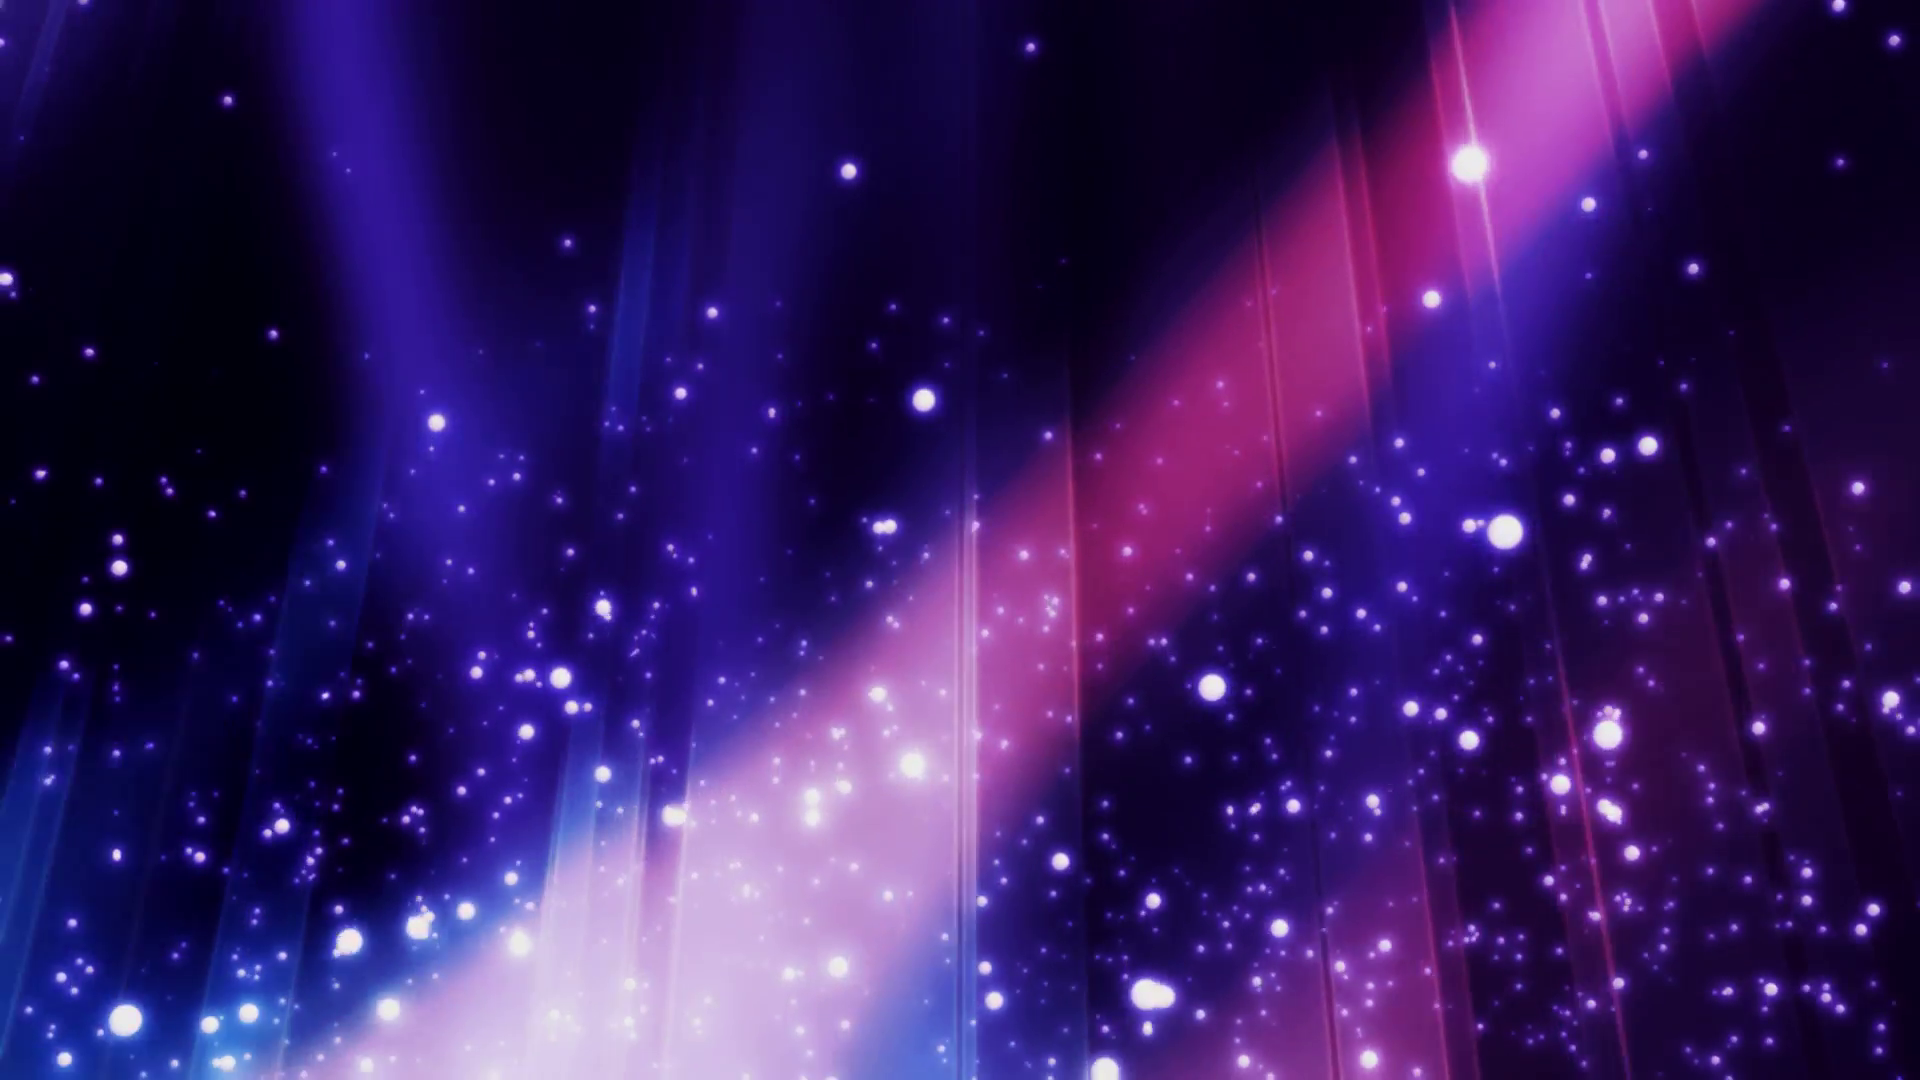 Abstract Purple and Magenta Sparks Motion Background - Videoblocks